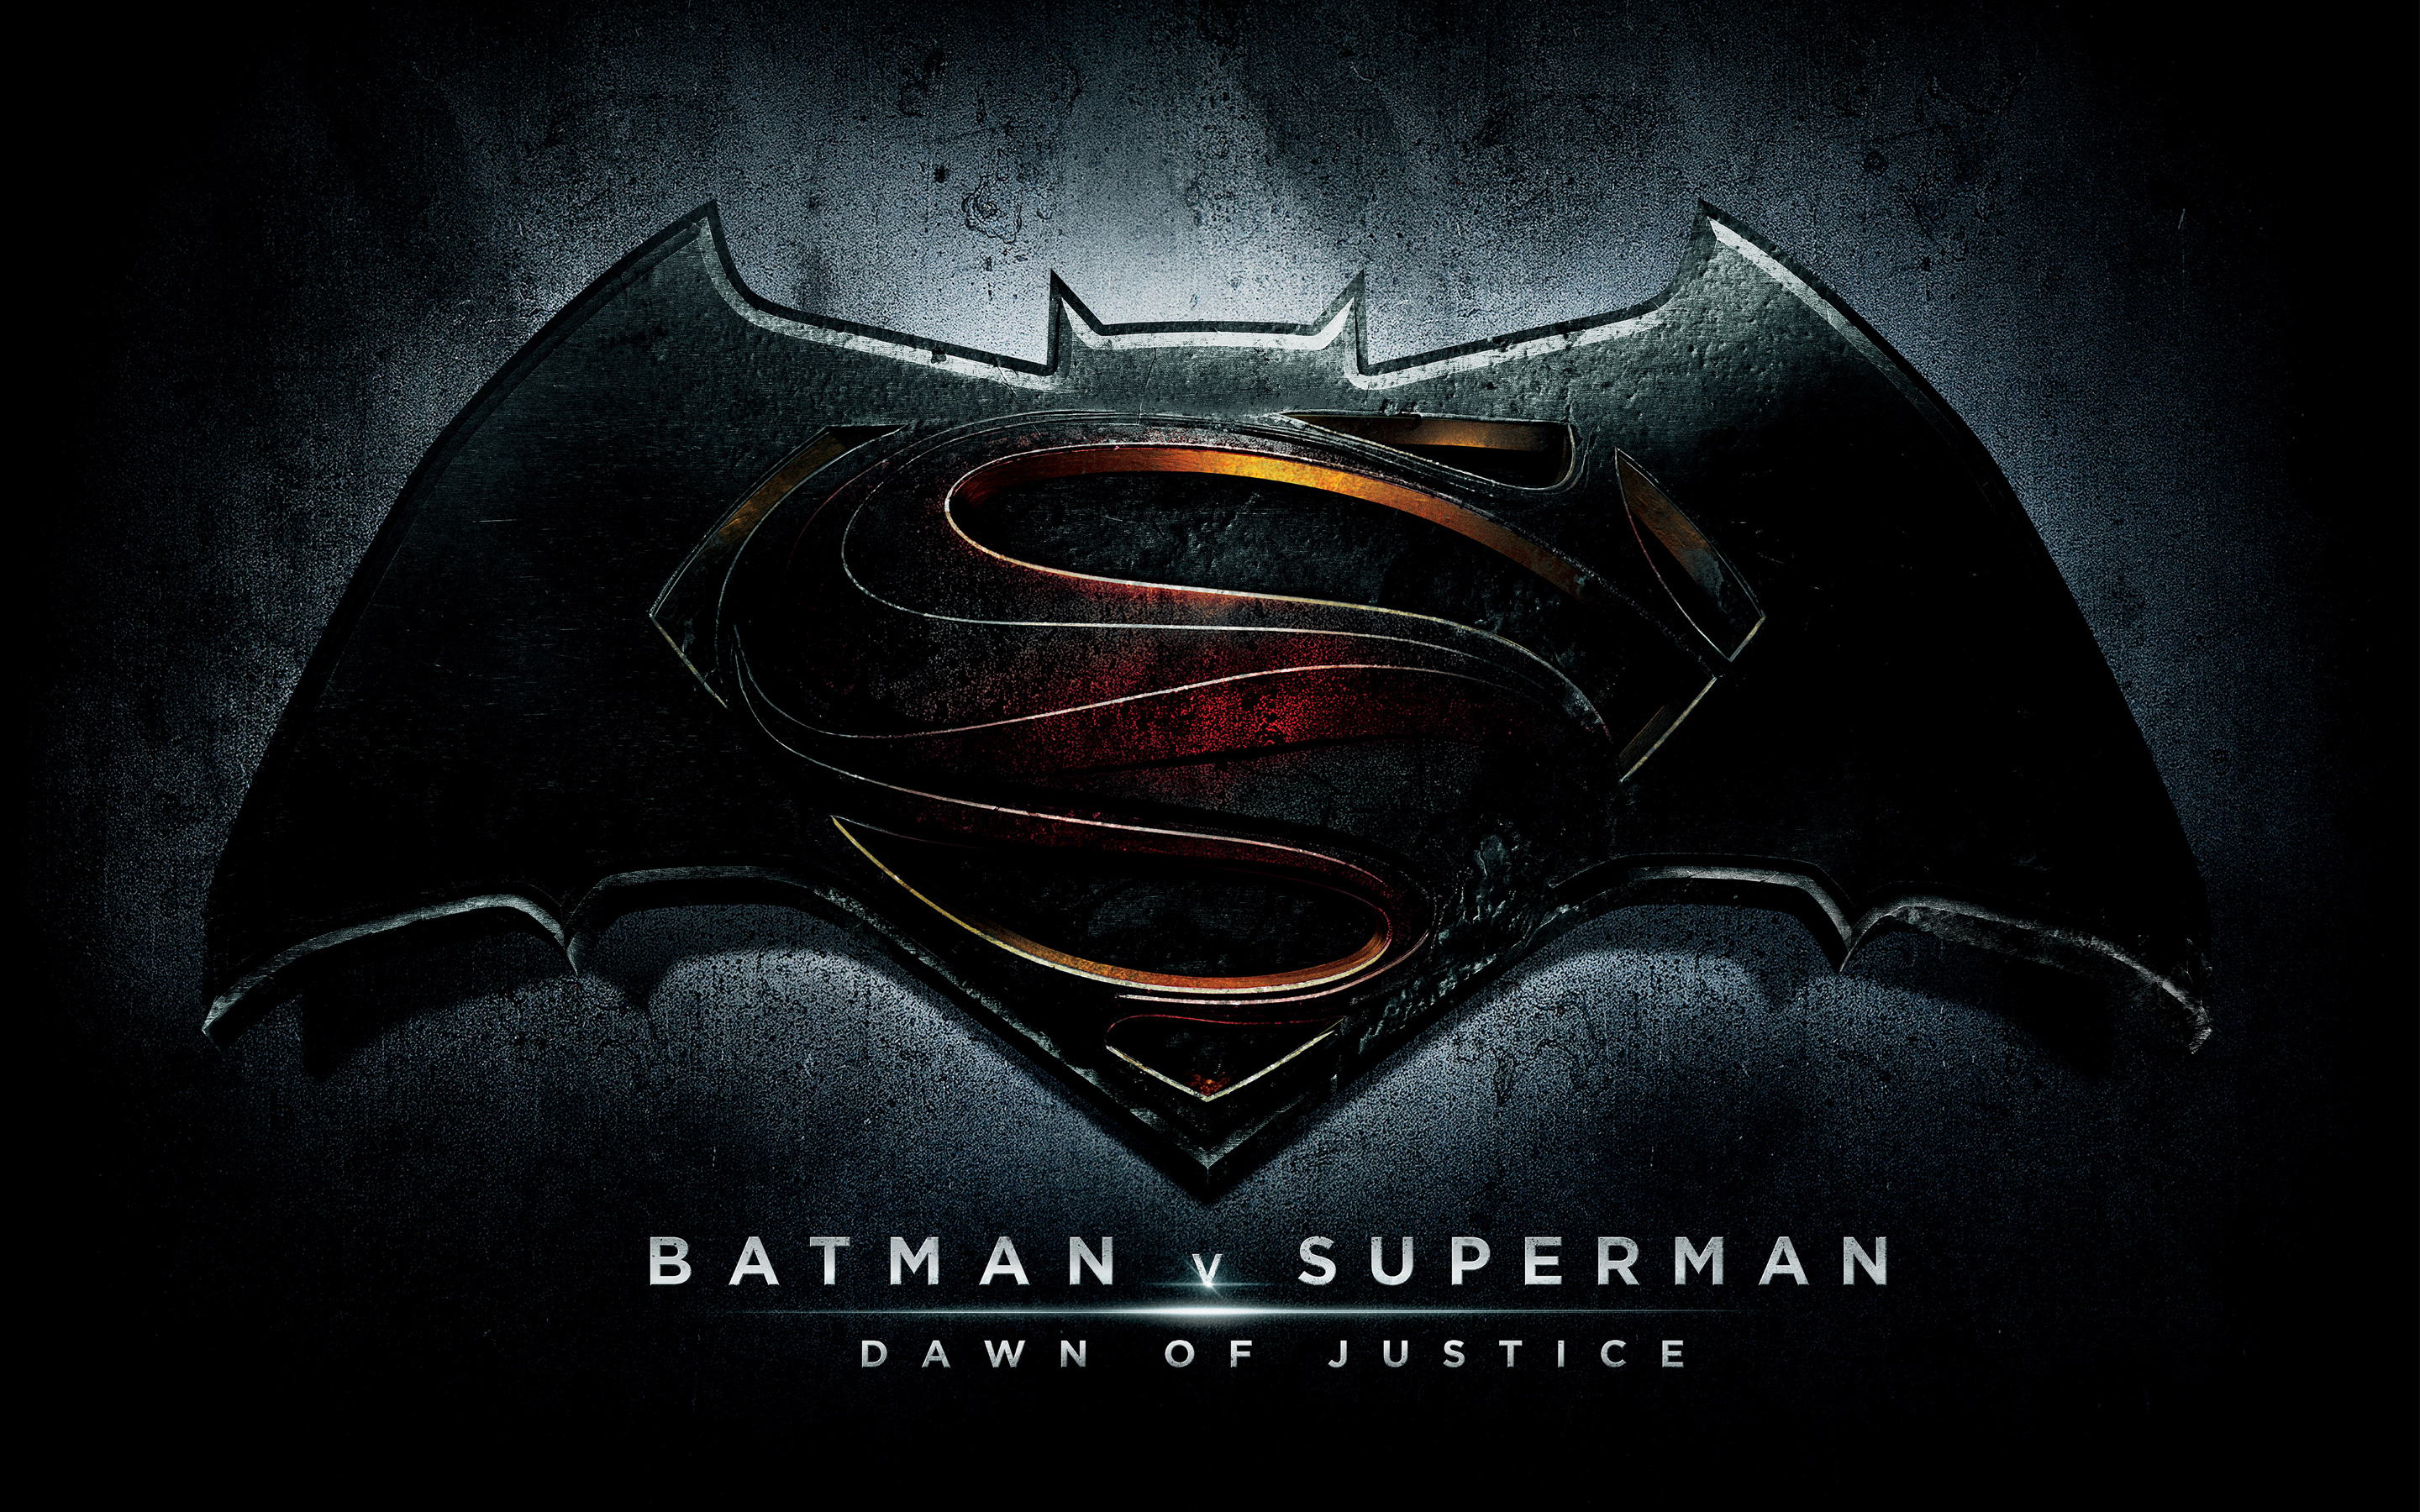 Batman v Superman Dawn of Justice Wallpapers HD Wallpapers 2880x1800